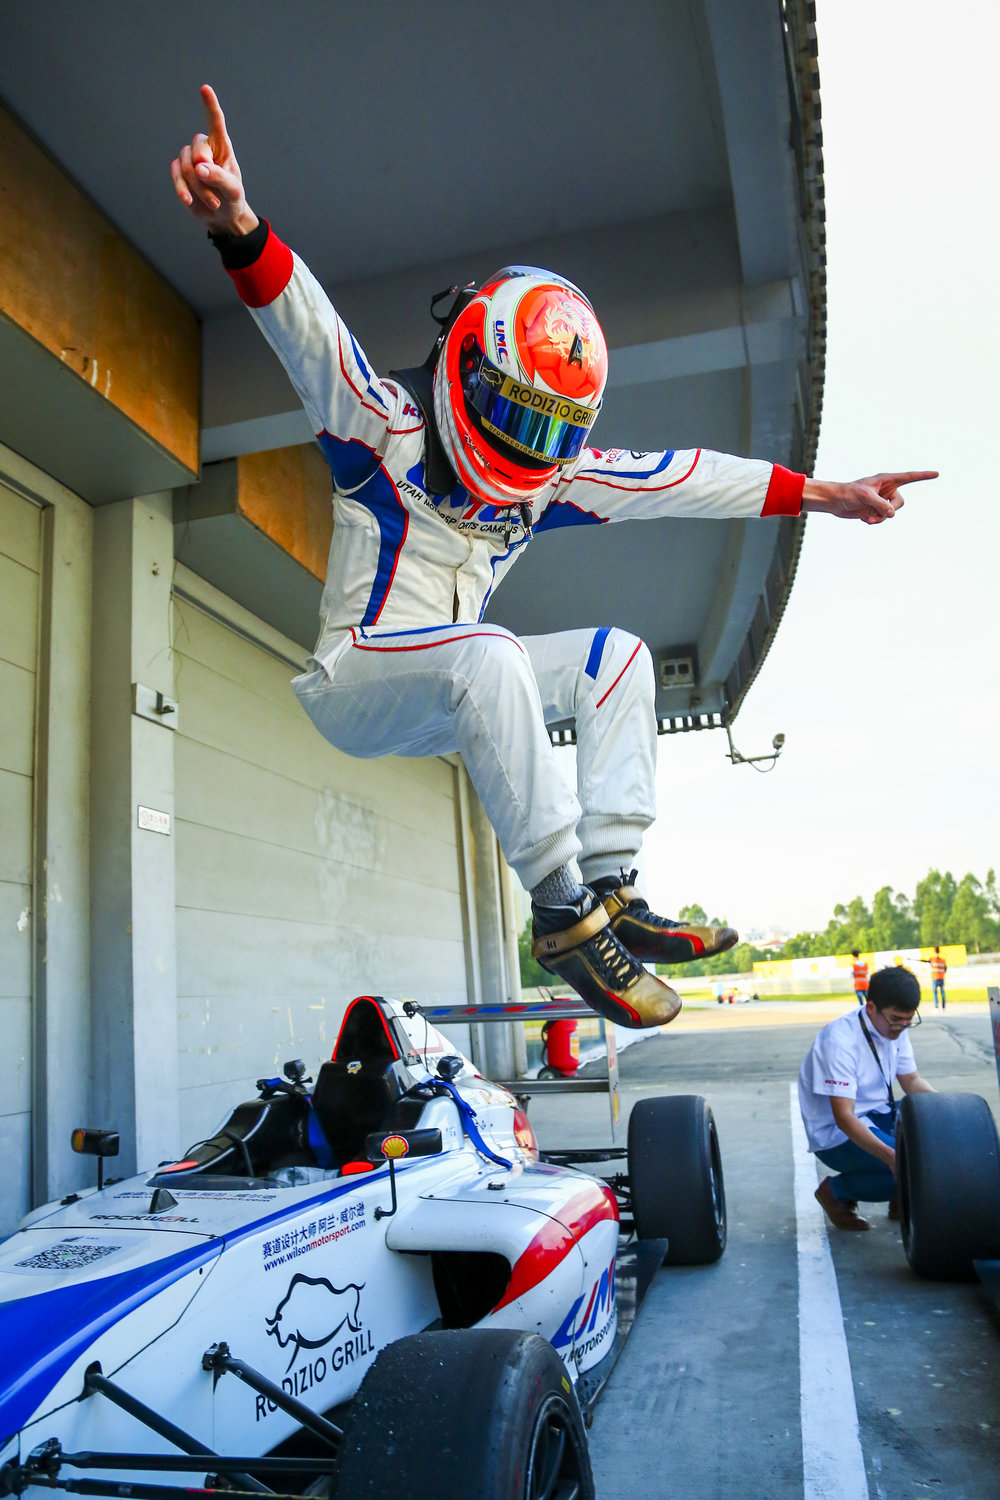 Bruno Carneiro celebrates clinching the 2016 FIA F4 Chinese Championship powered by Geely.